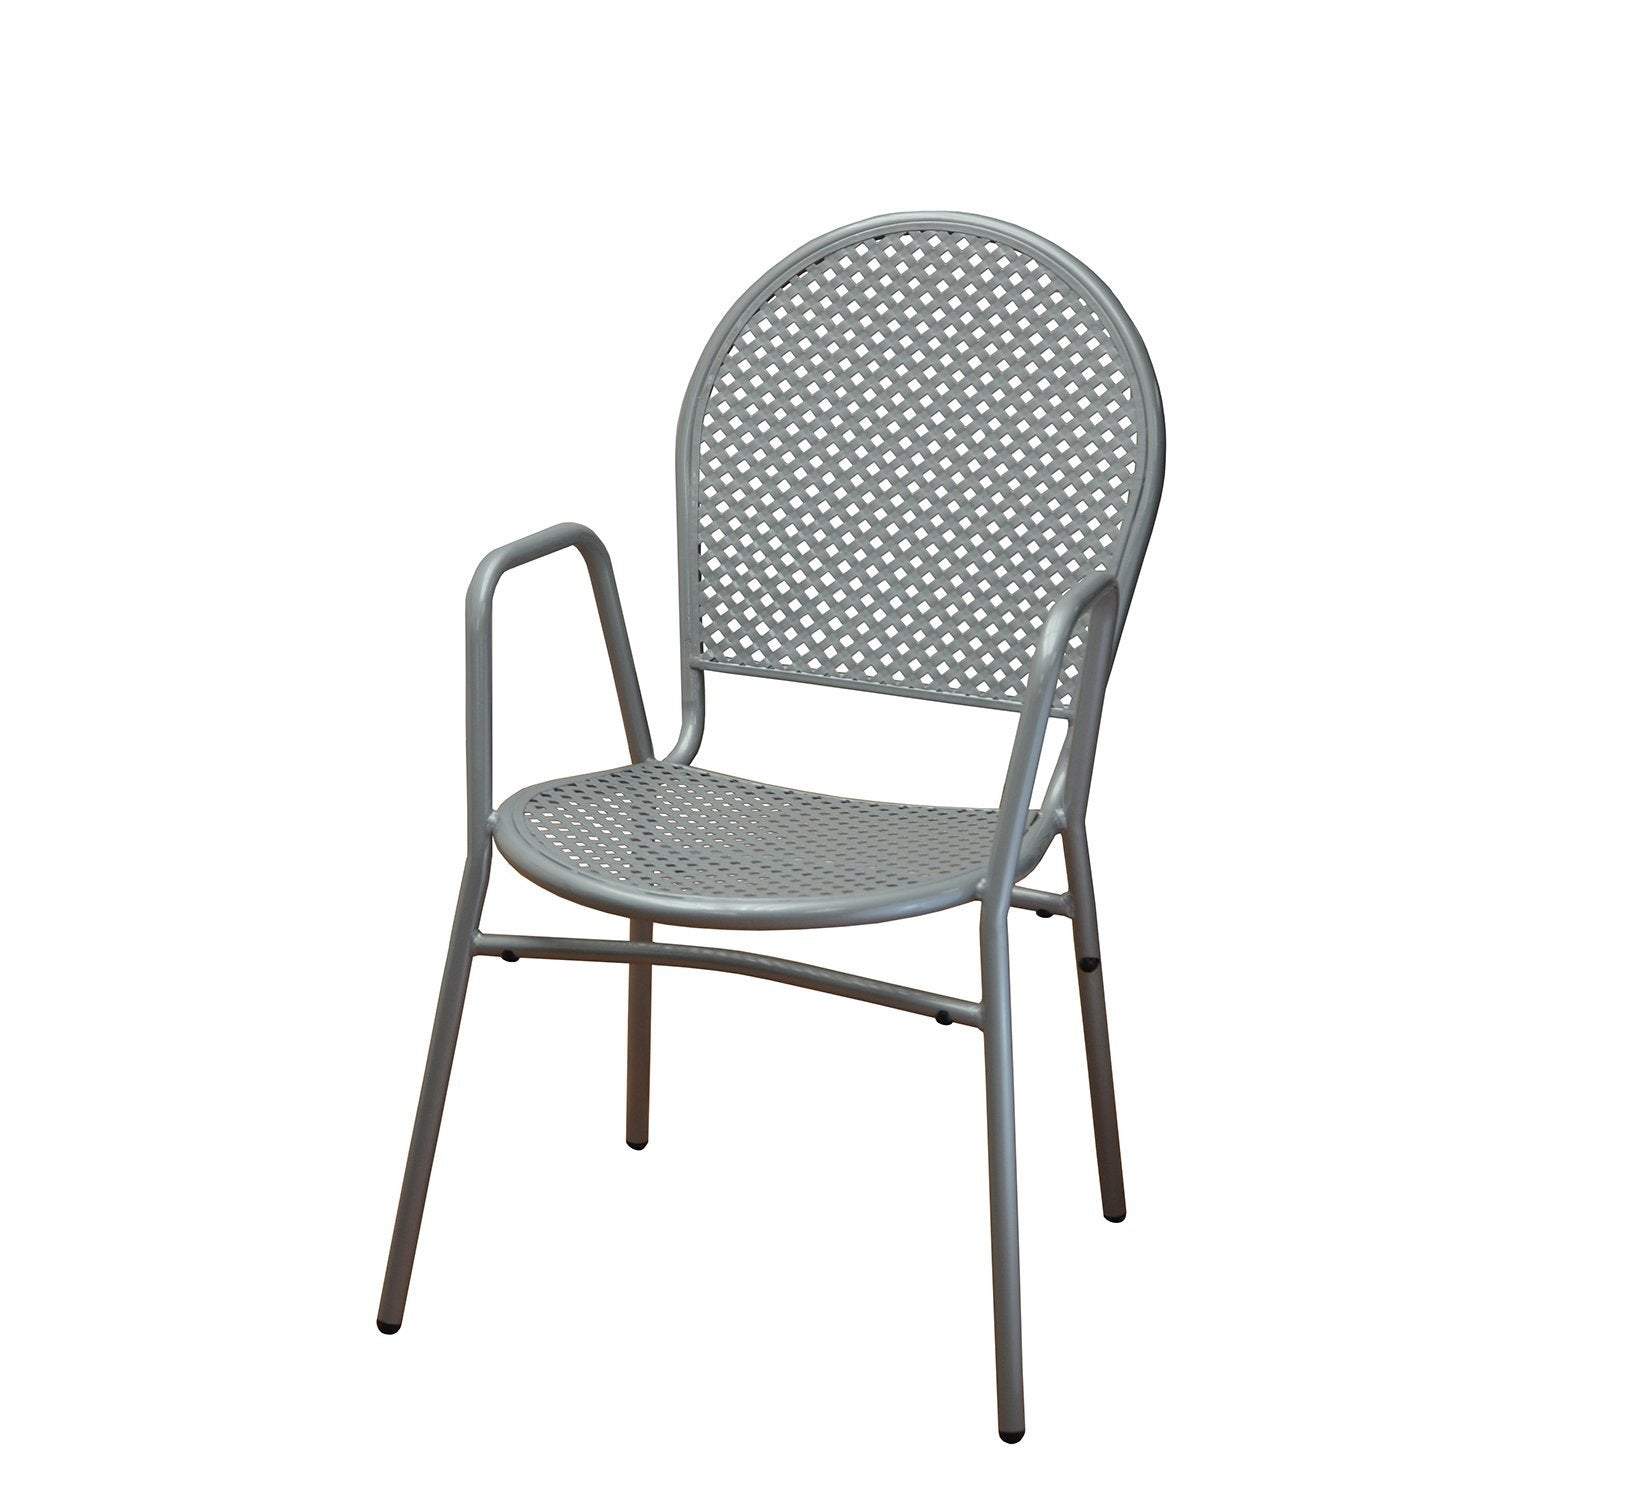 DHC 7928-SIL Stamping Steel Mesh All Steel Patio Chair, Silver Finish